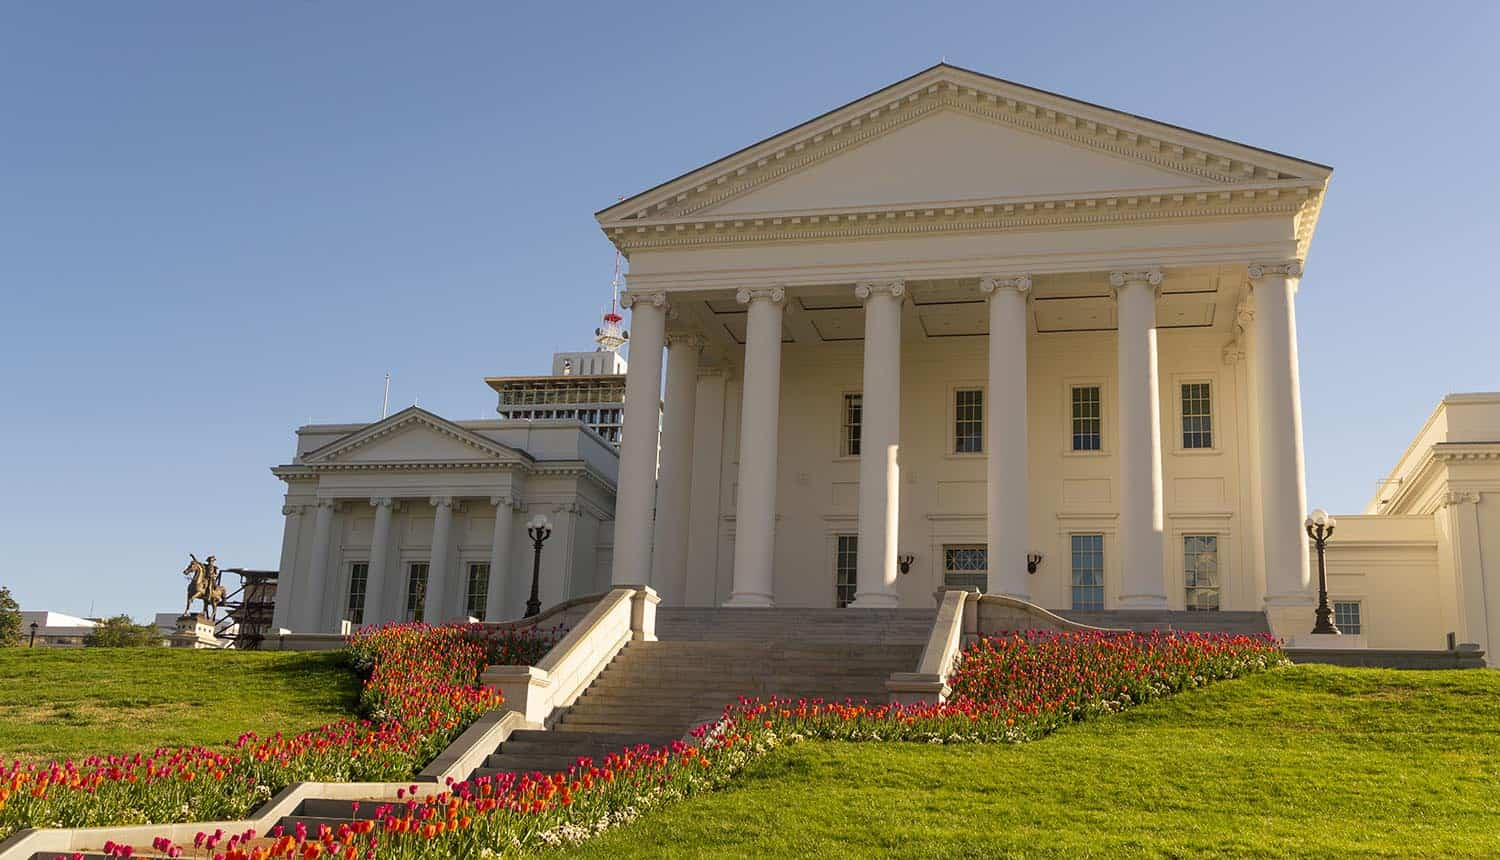 Virginia capital building in Richmond showing new consumer privacy law